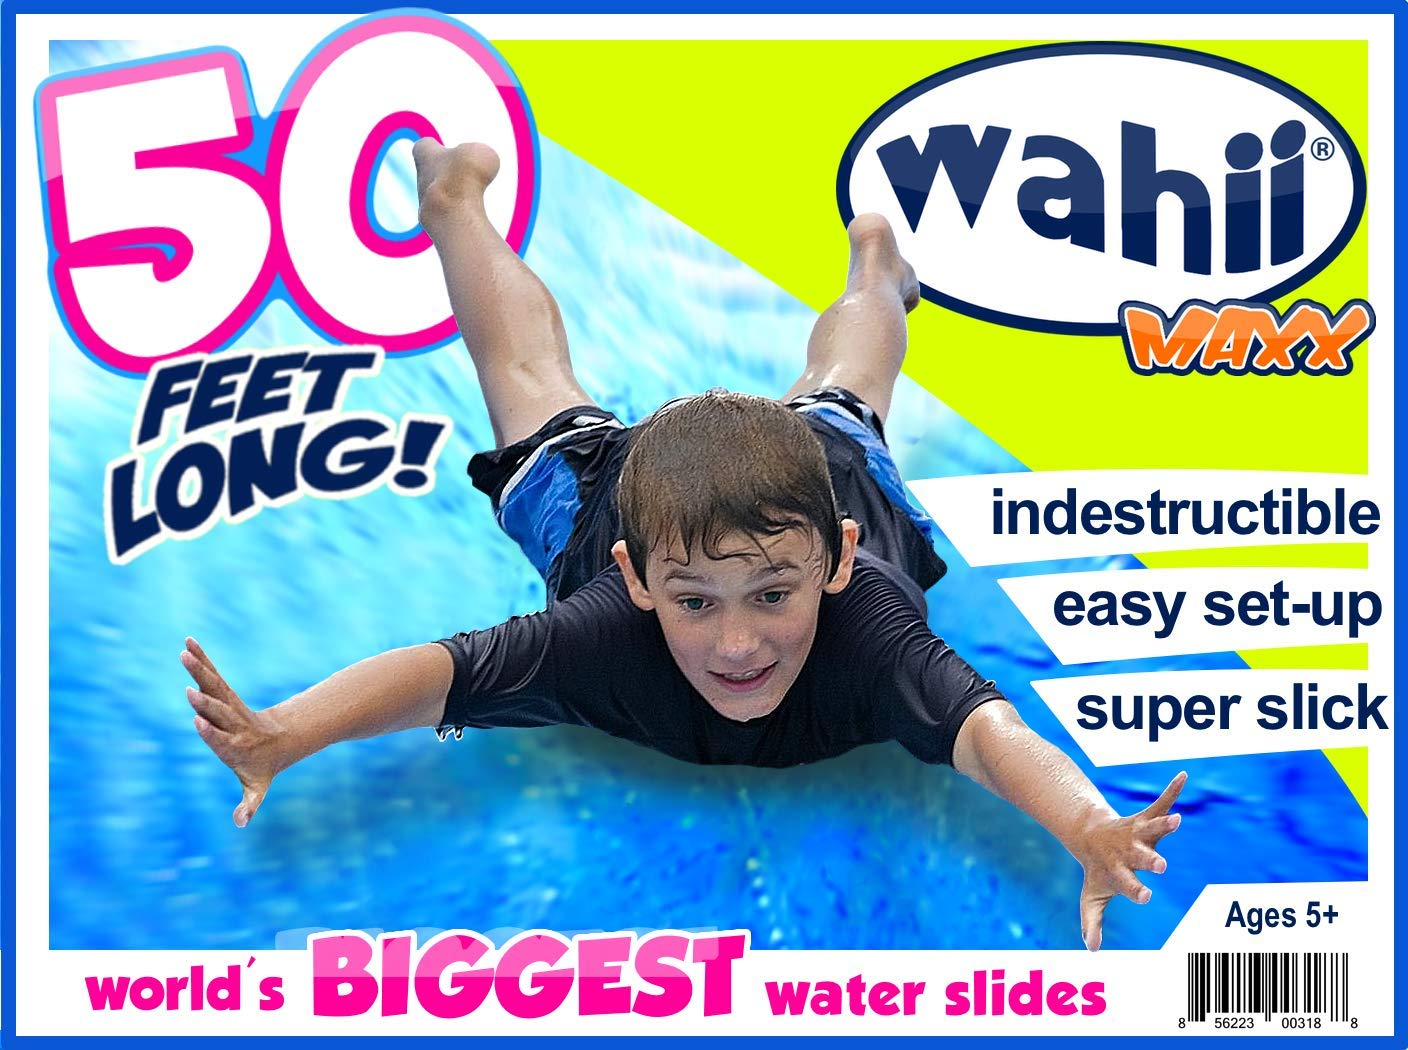 Wahii MAXX 50' x 5' - Super Slippery, 22oz Vinyl - Never Rip or Puncture by Wahii